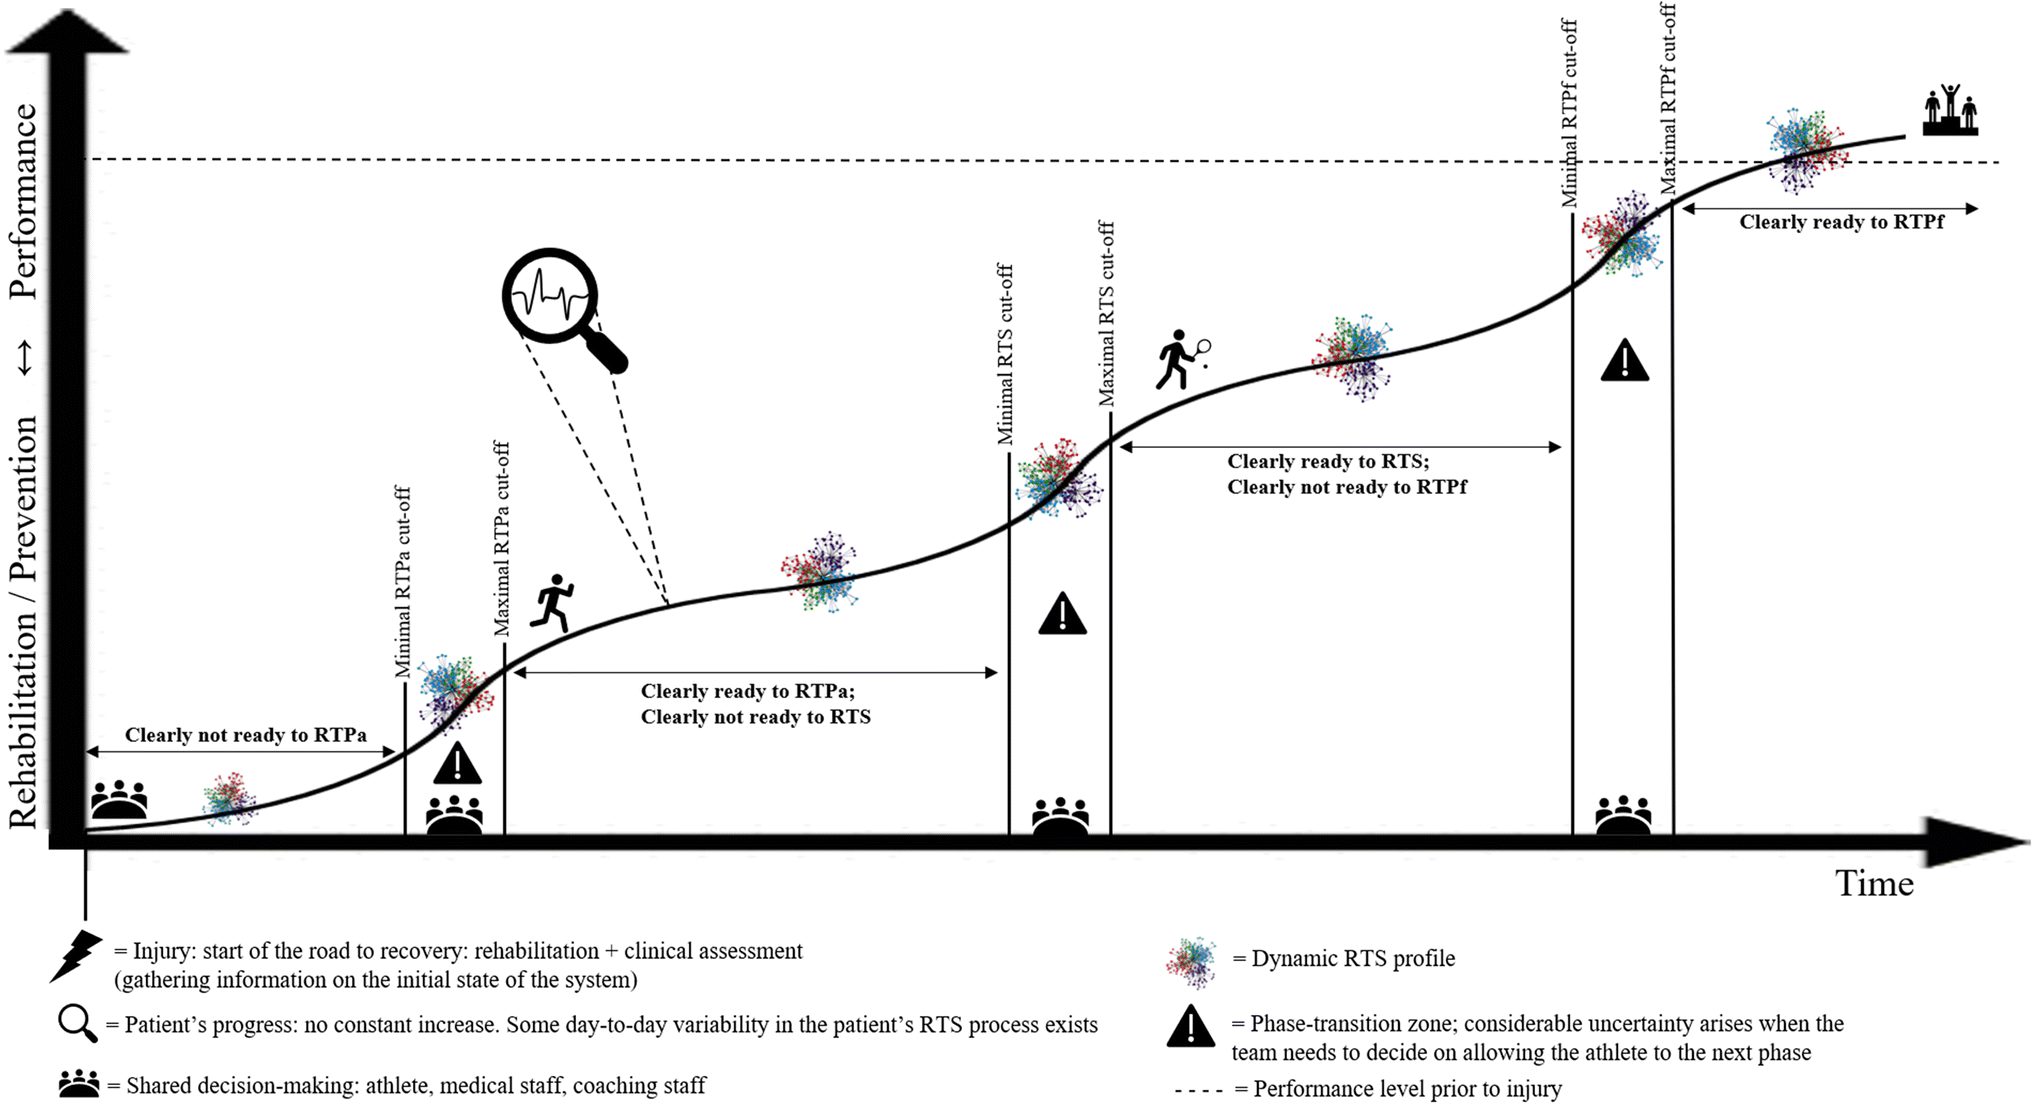 criteria based return to sport decision making following lateralopen image in new window